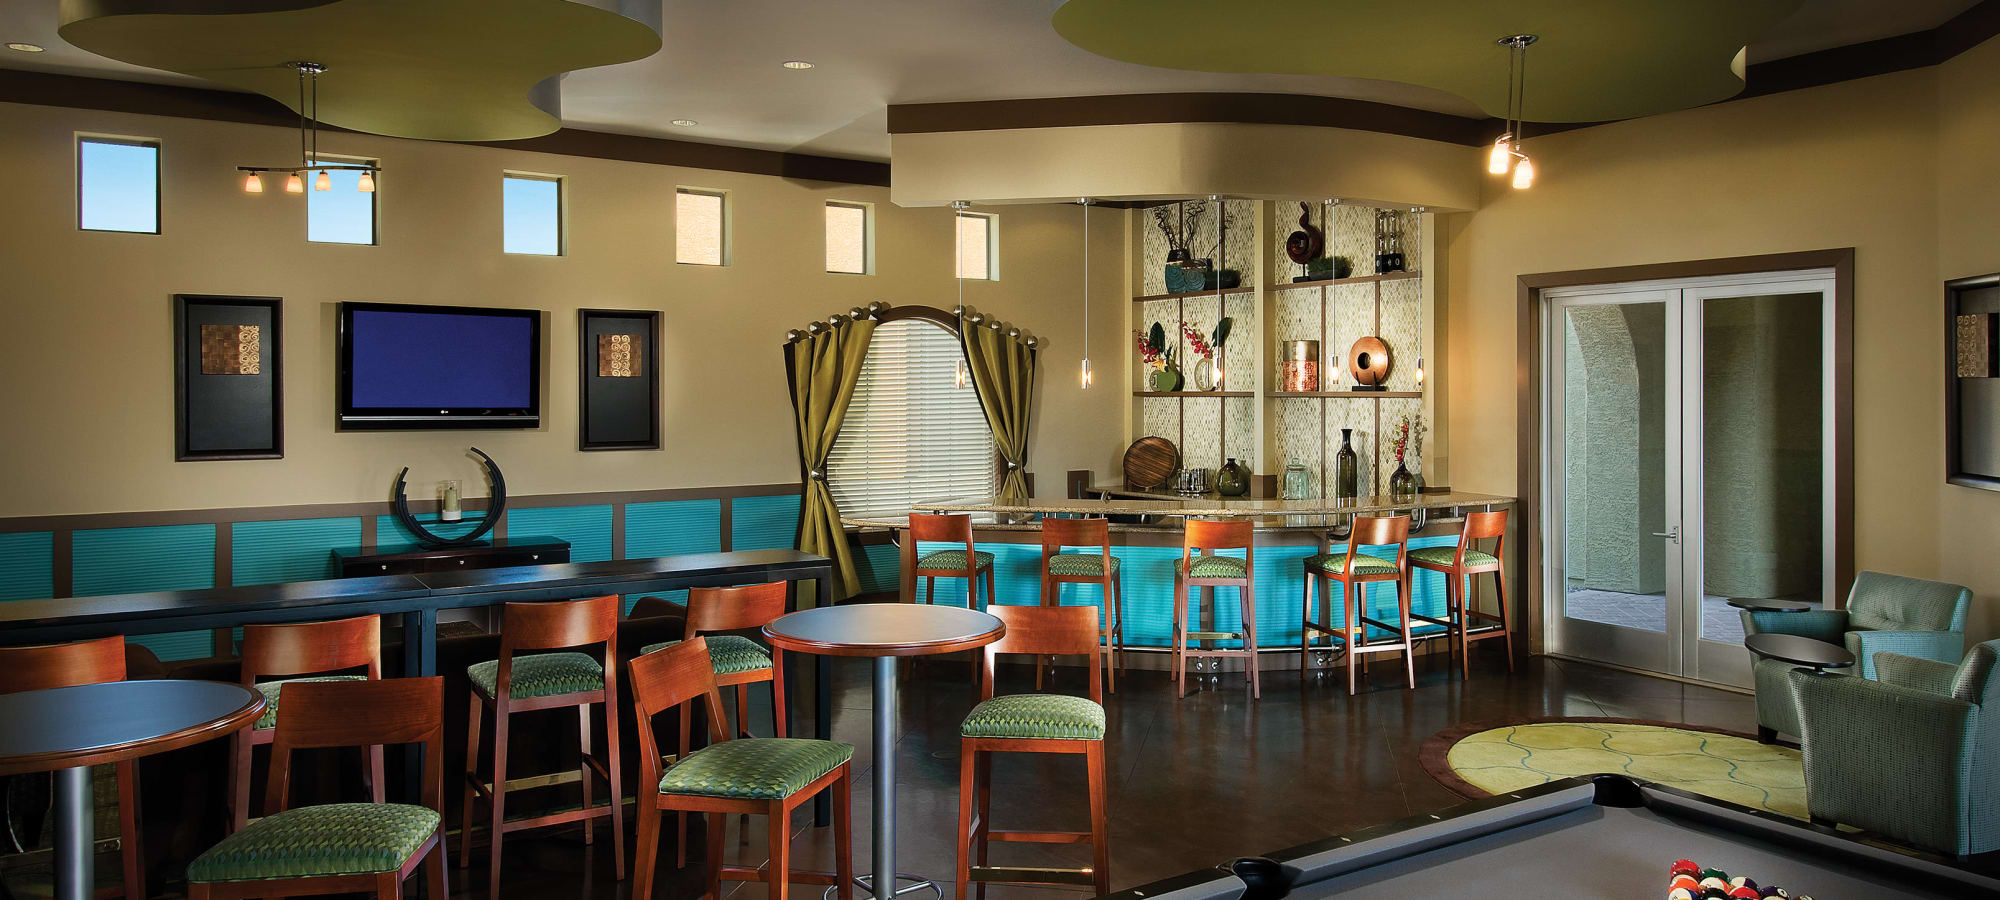 Community clubhouse at Ravenwood Heights in Tempe, Arizona